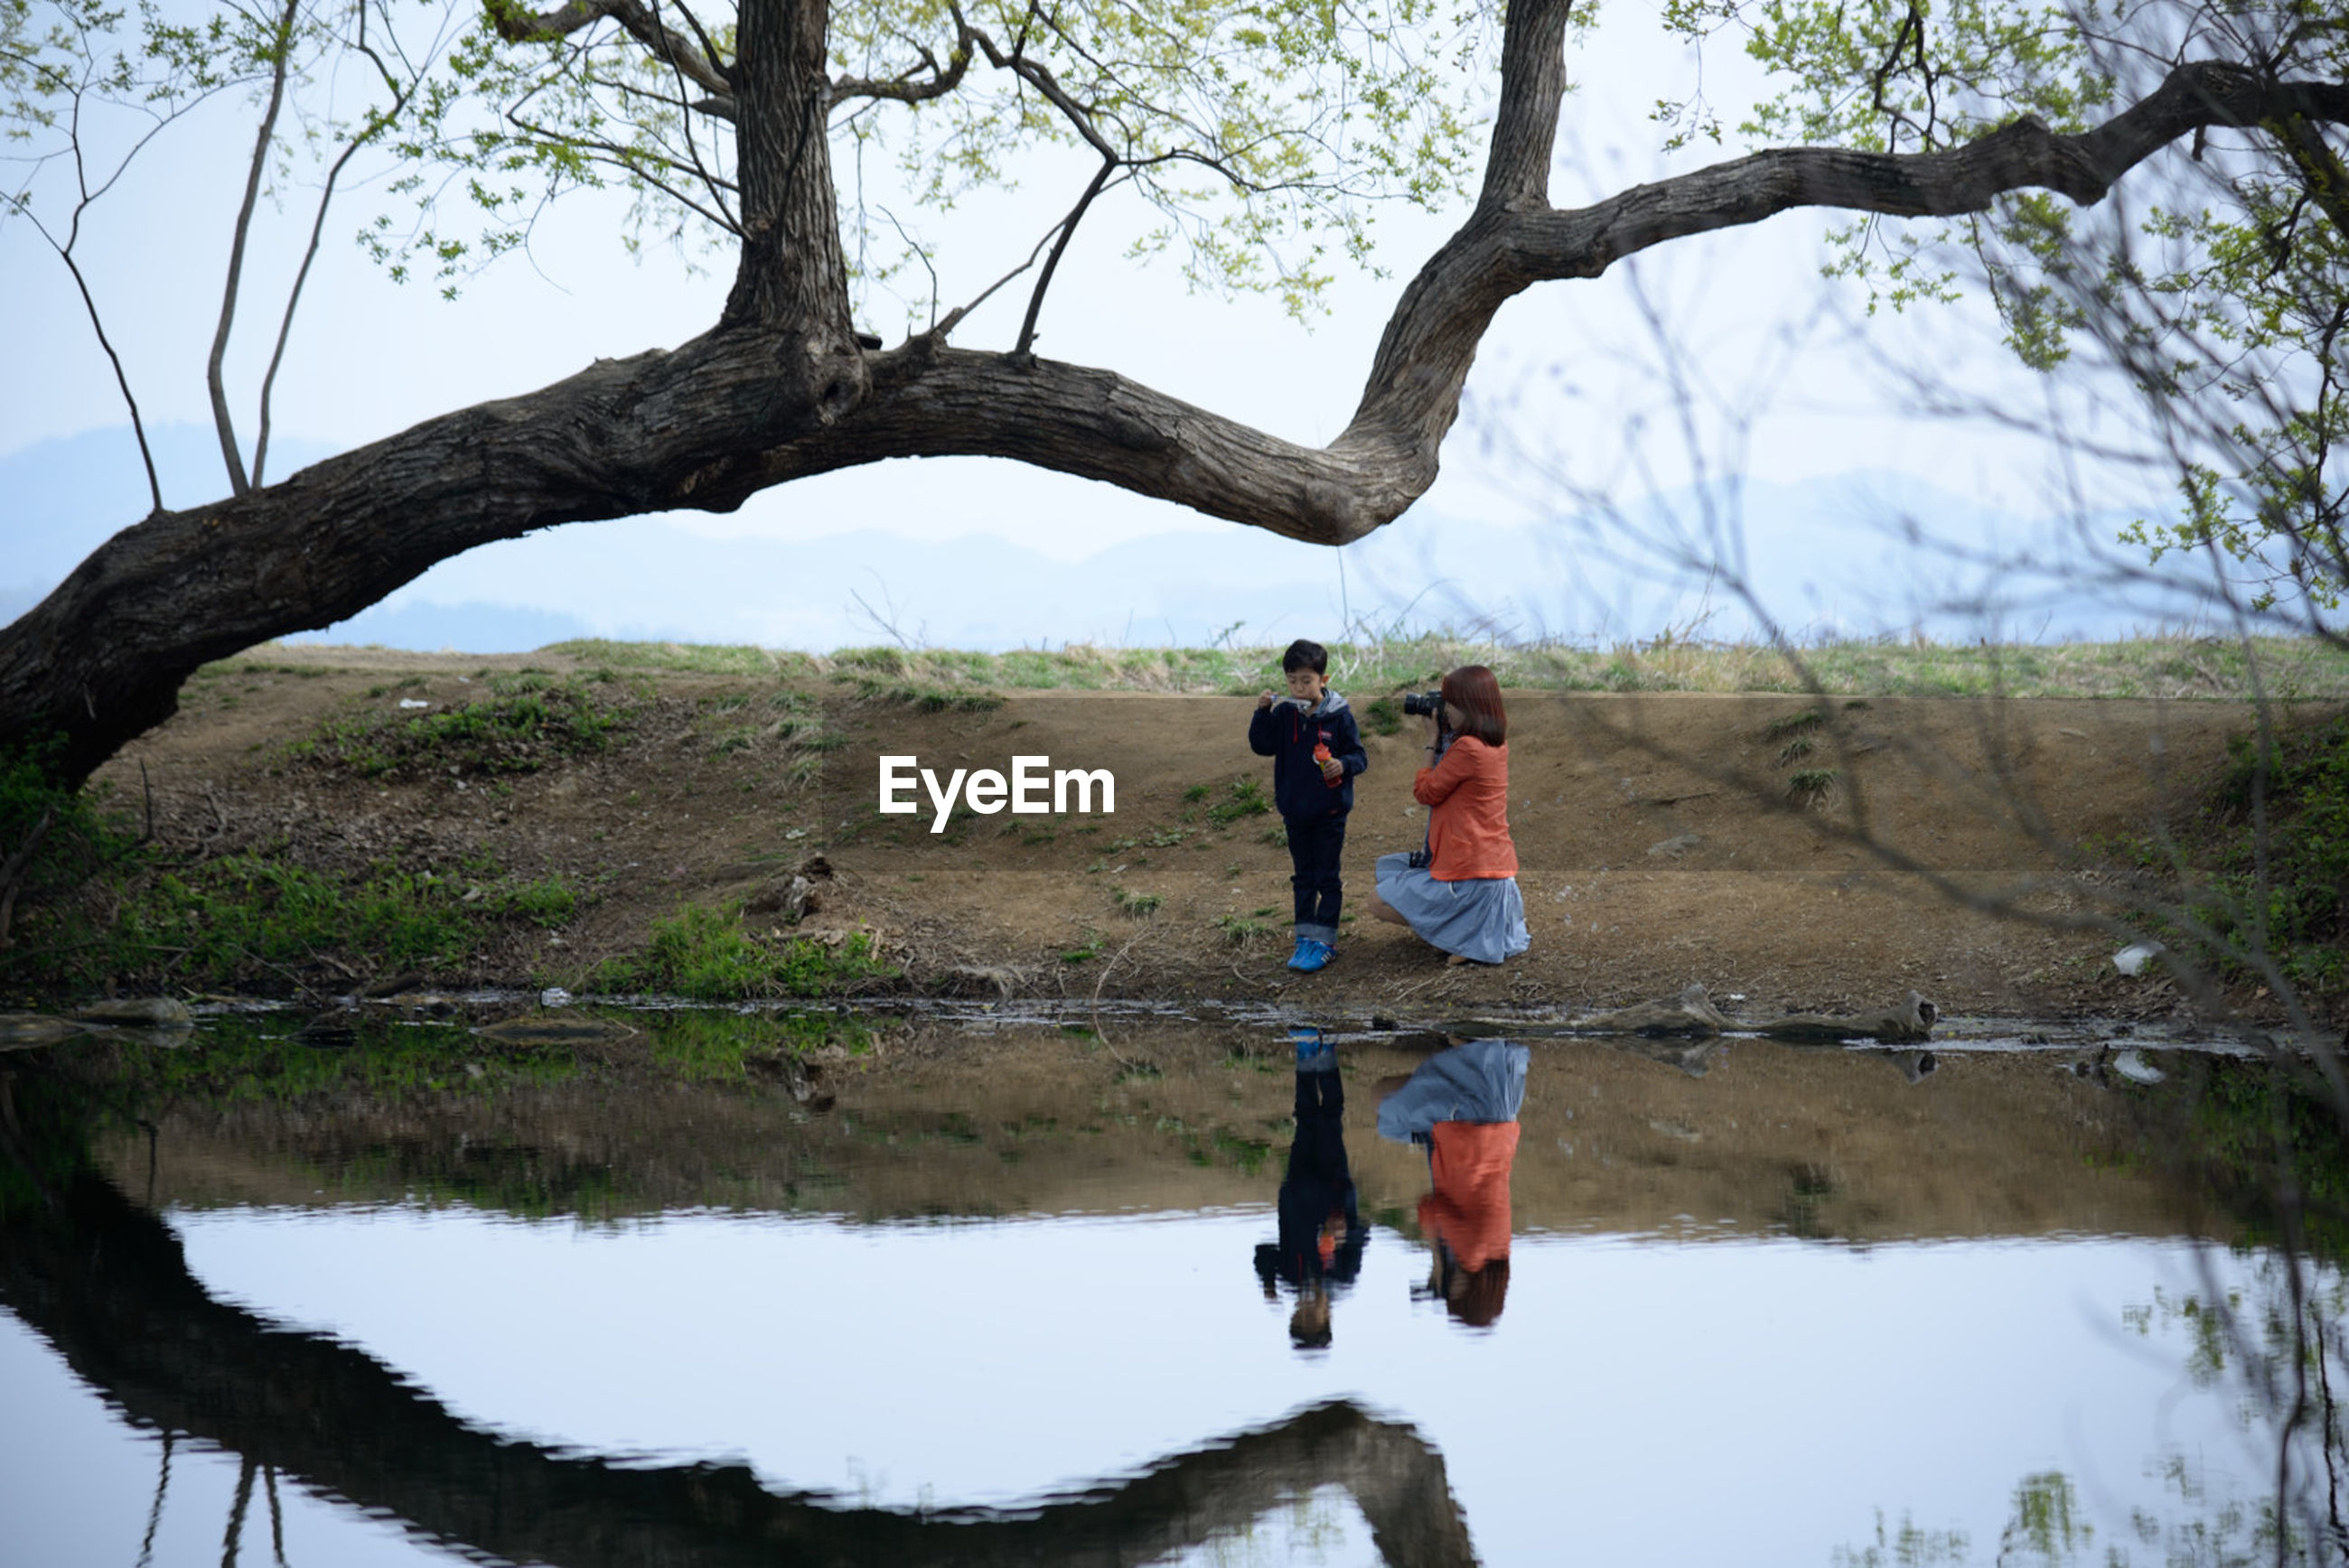 tree, real people, lifestyles, two people, leisure activity, tree trunk, men, full length, outdoors, nature, day, lake, water, women, beauty in nature, sky, people